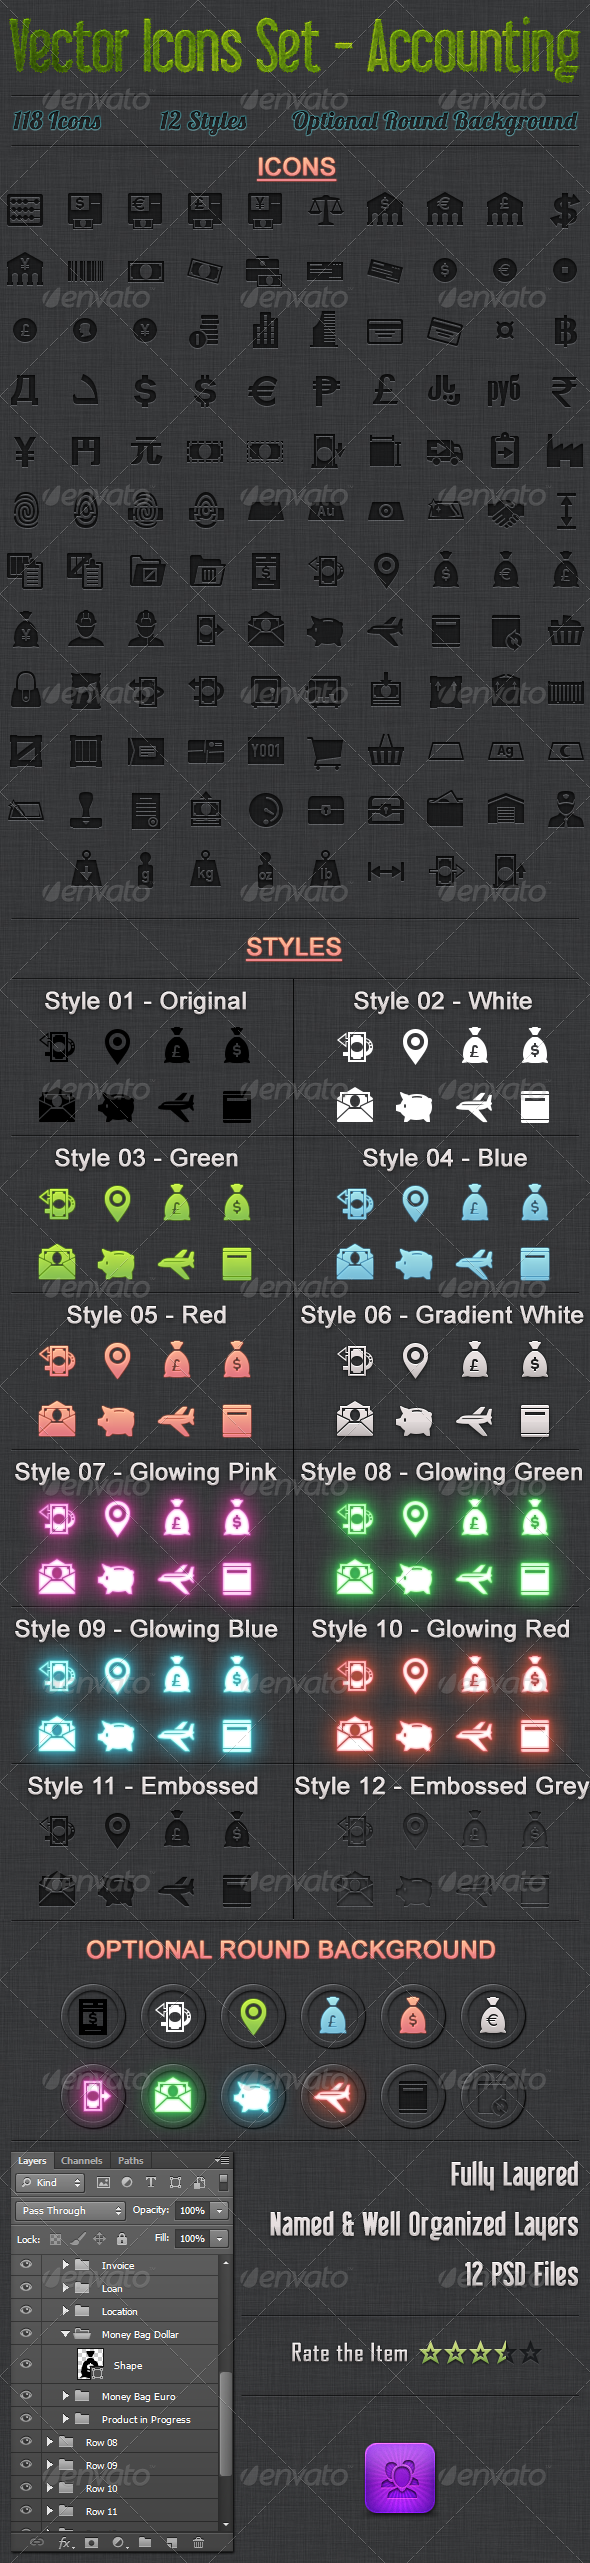 118 Vector Icons Accounting